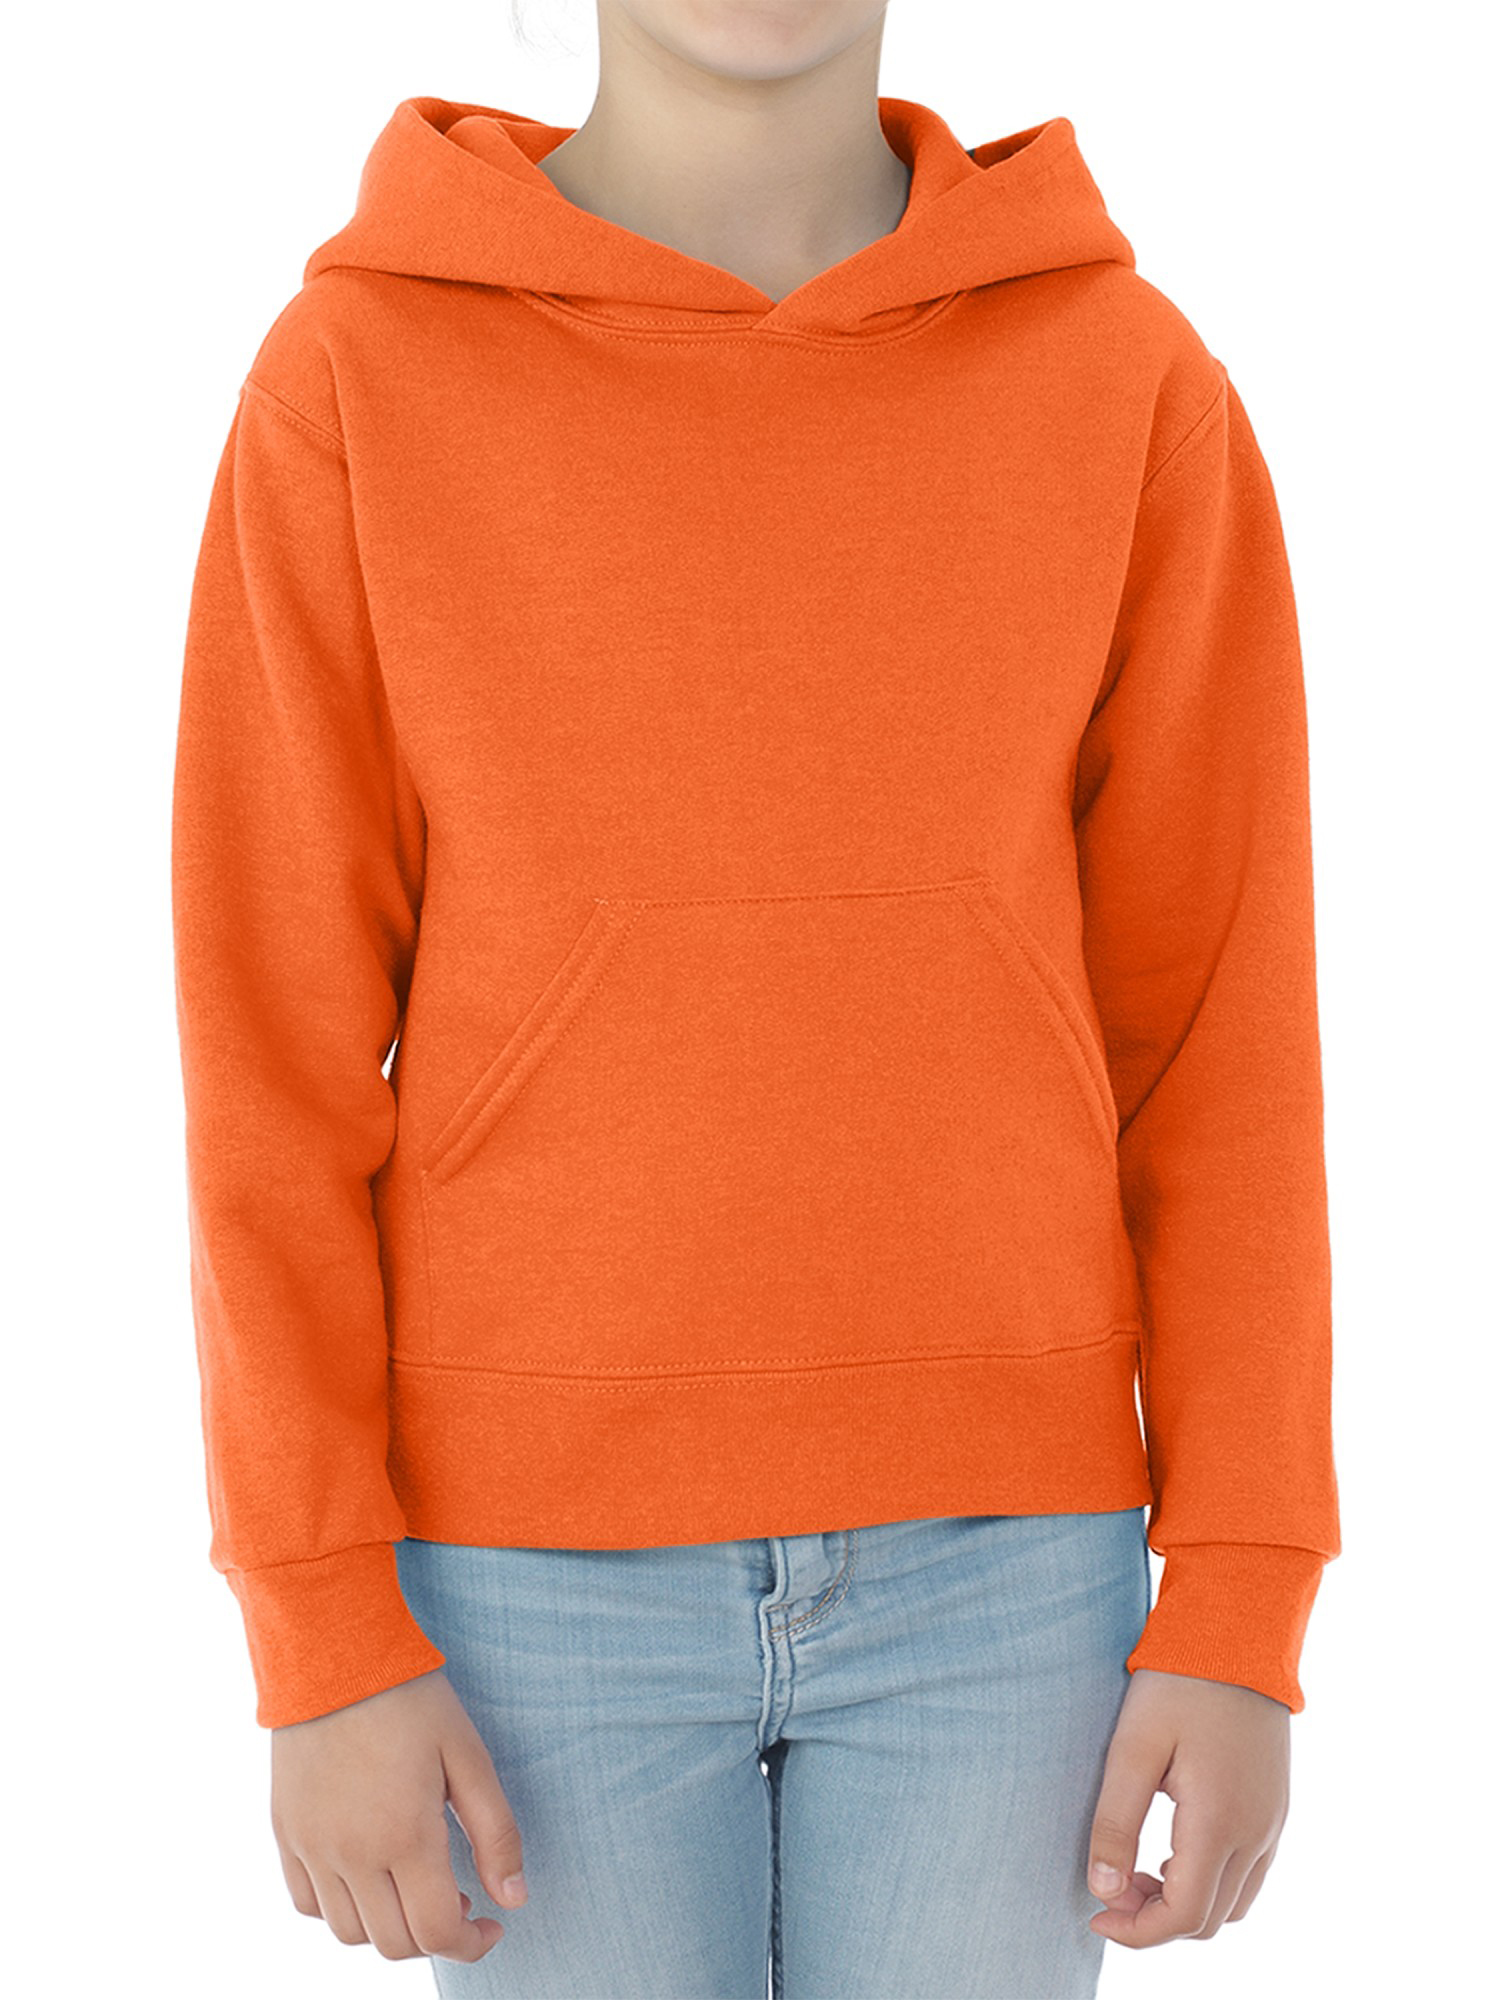 Boys' Pill-Resistant Performance Fleece Pullover Hoodie